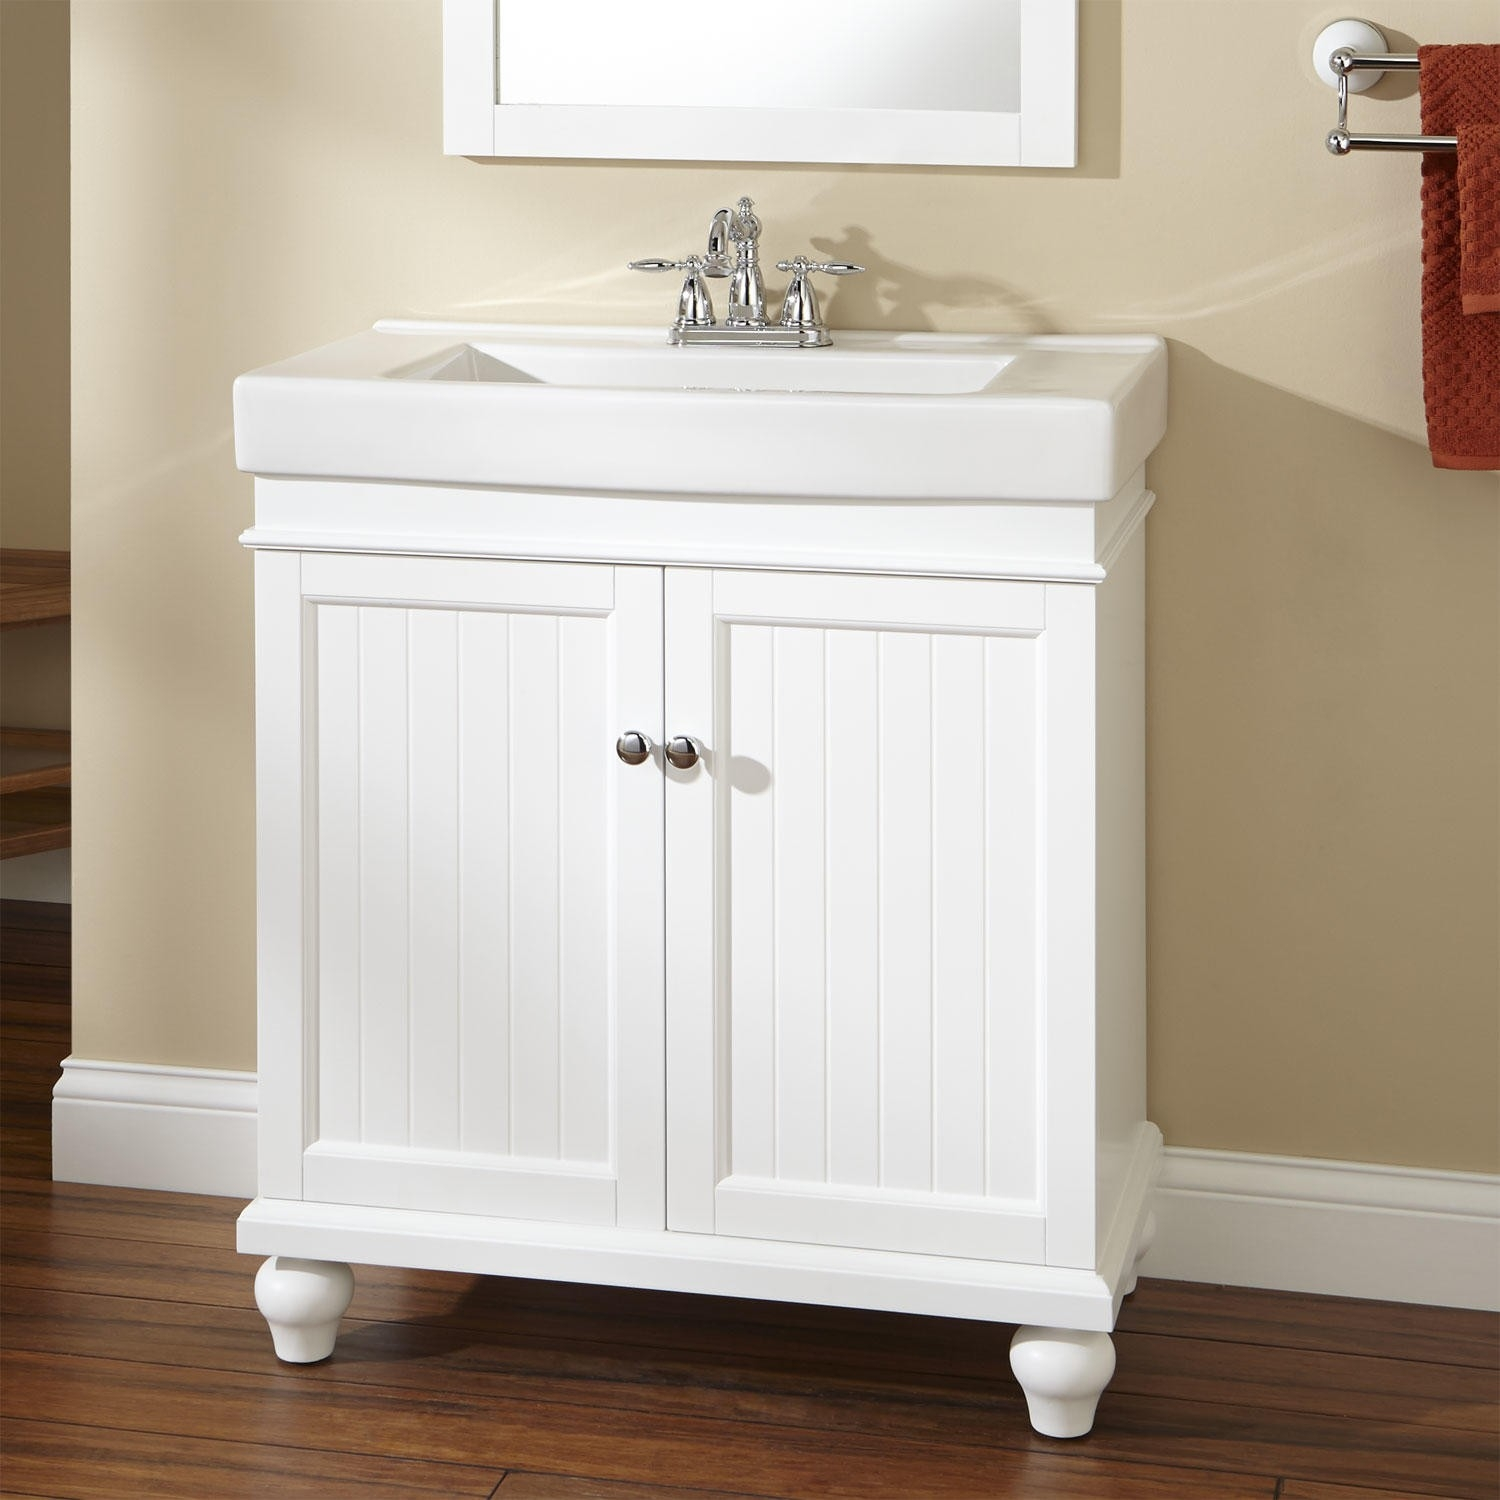 30 Inch Vanity Cabinets For Bathrooms